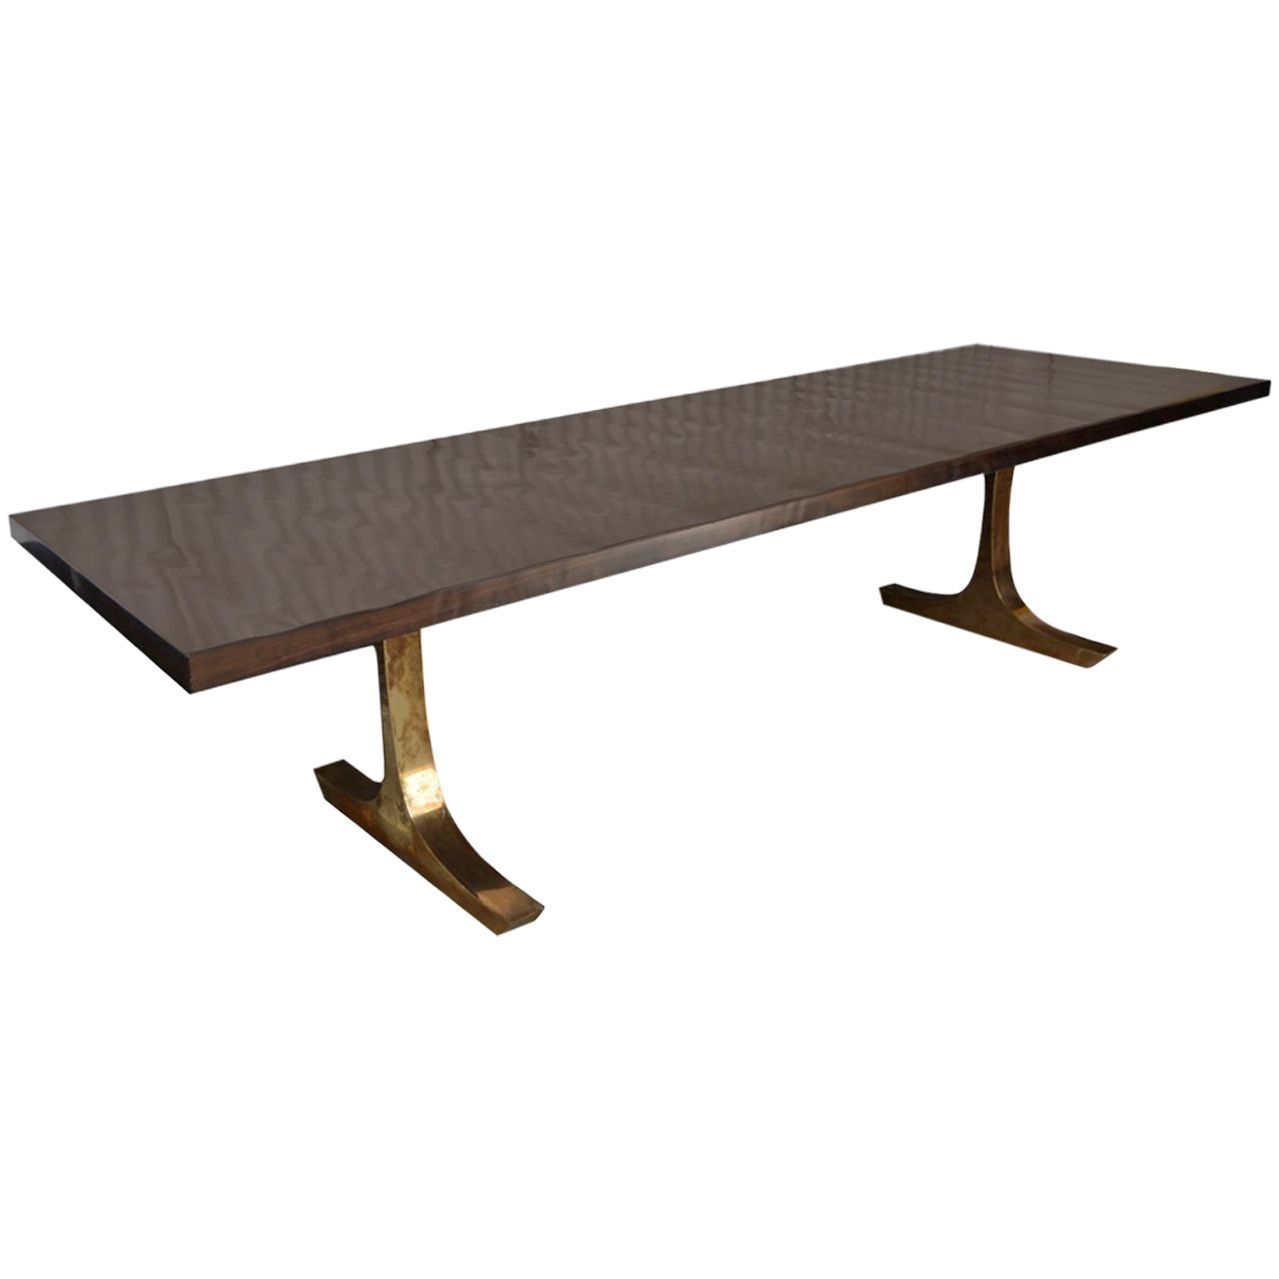 Coffee Table With Bronze Legs: Andrianna Shamaris French Polished Dining Table With